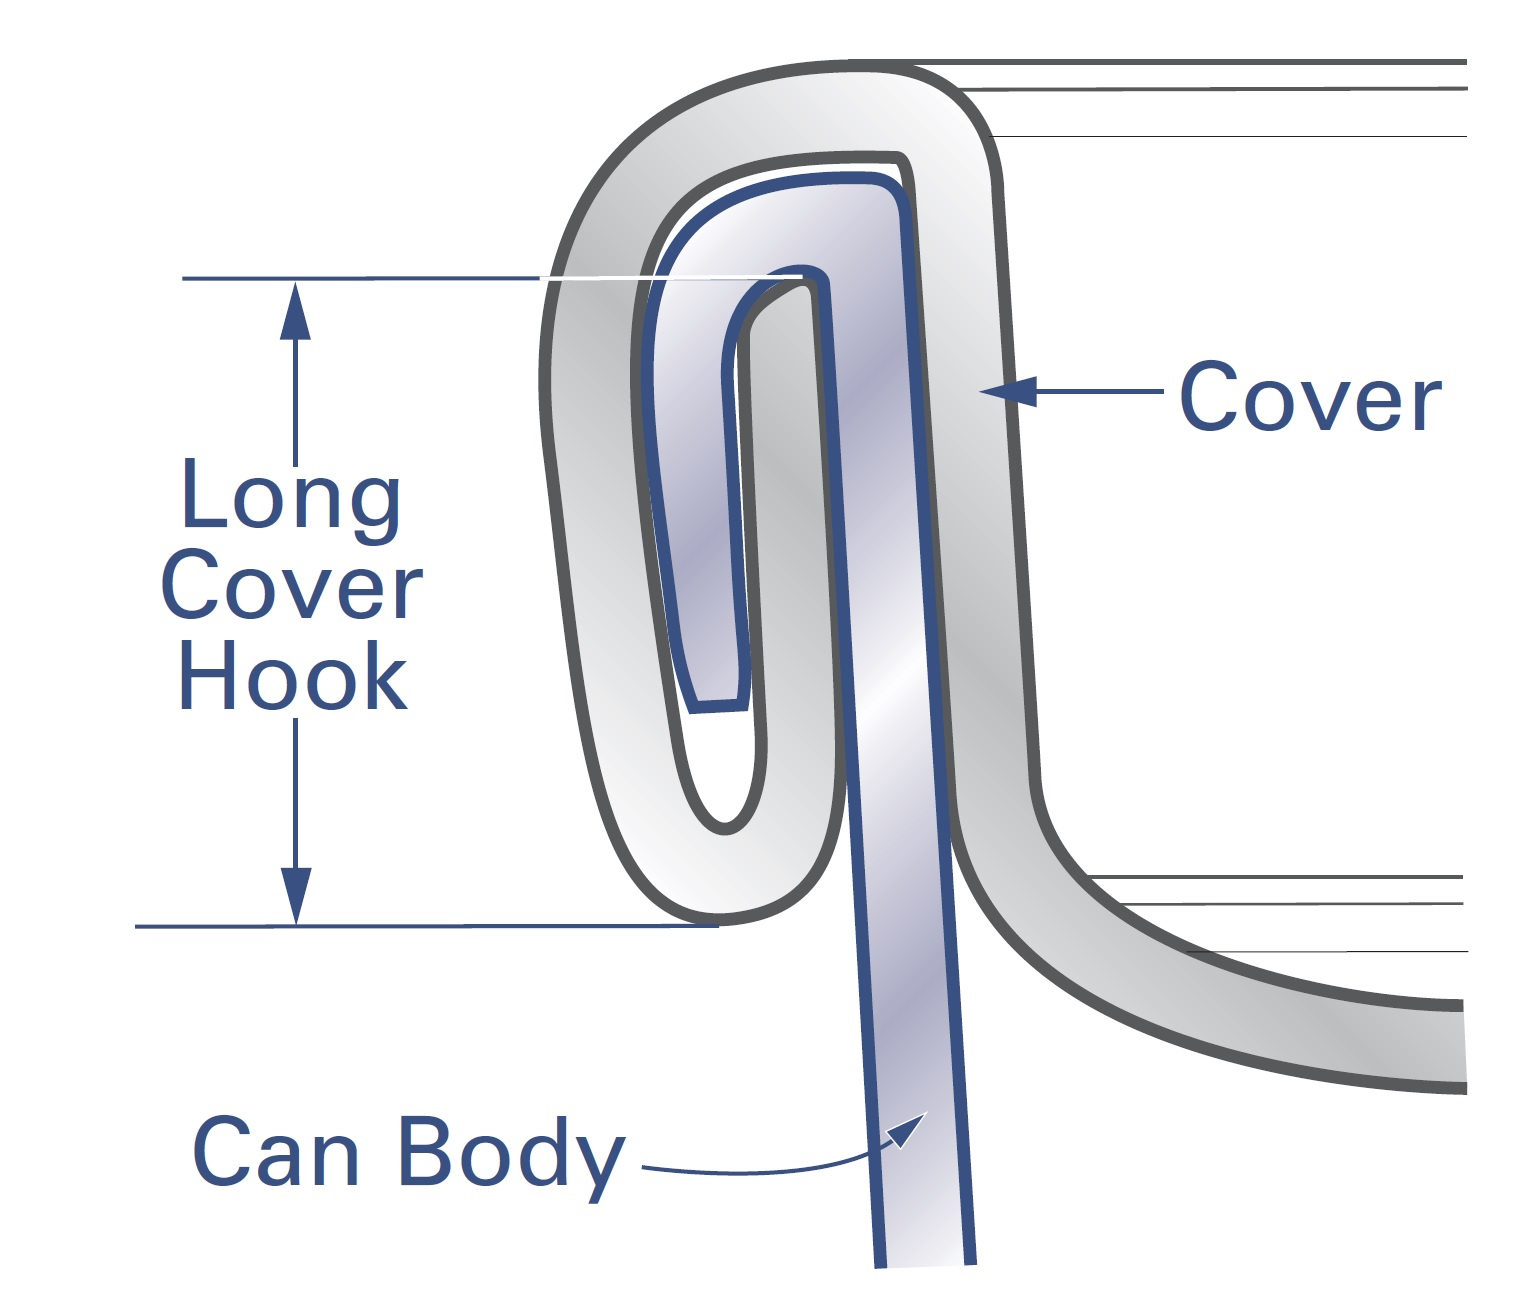 long-cover-hook